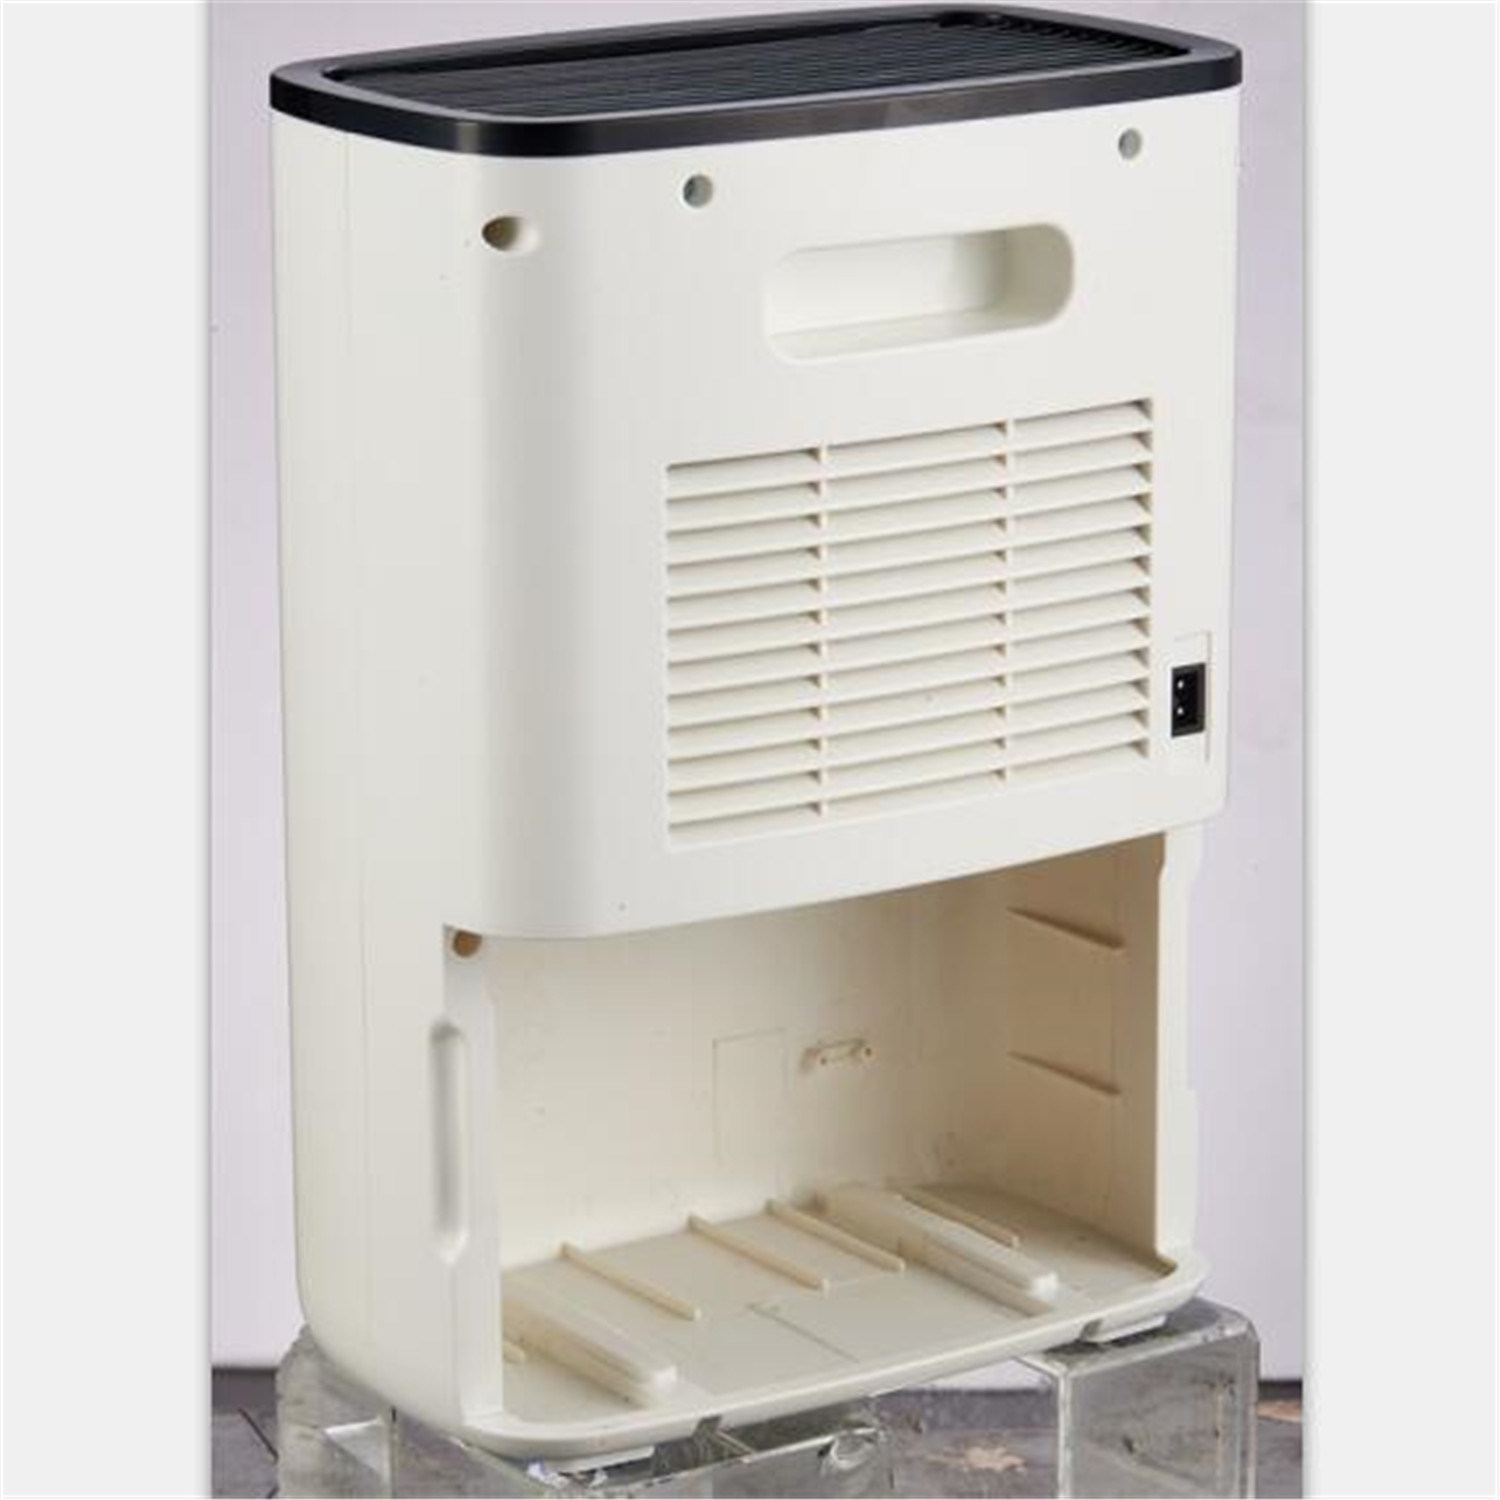 1L/D Capacity Semiconductor Dehumidifier with UV Light